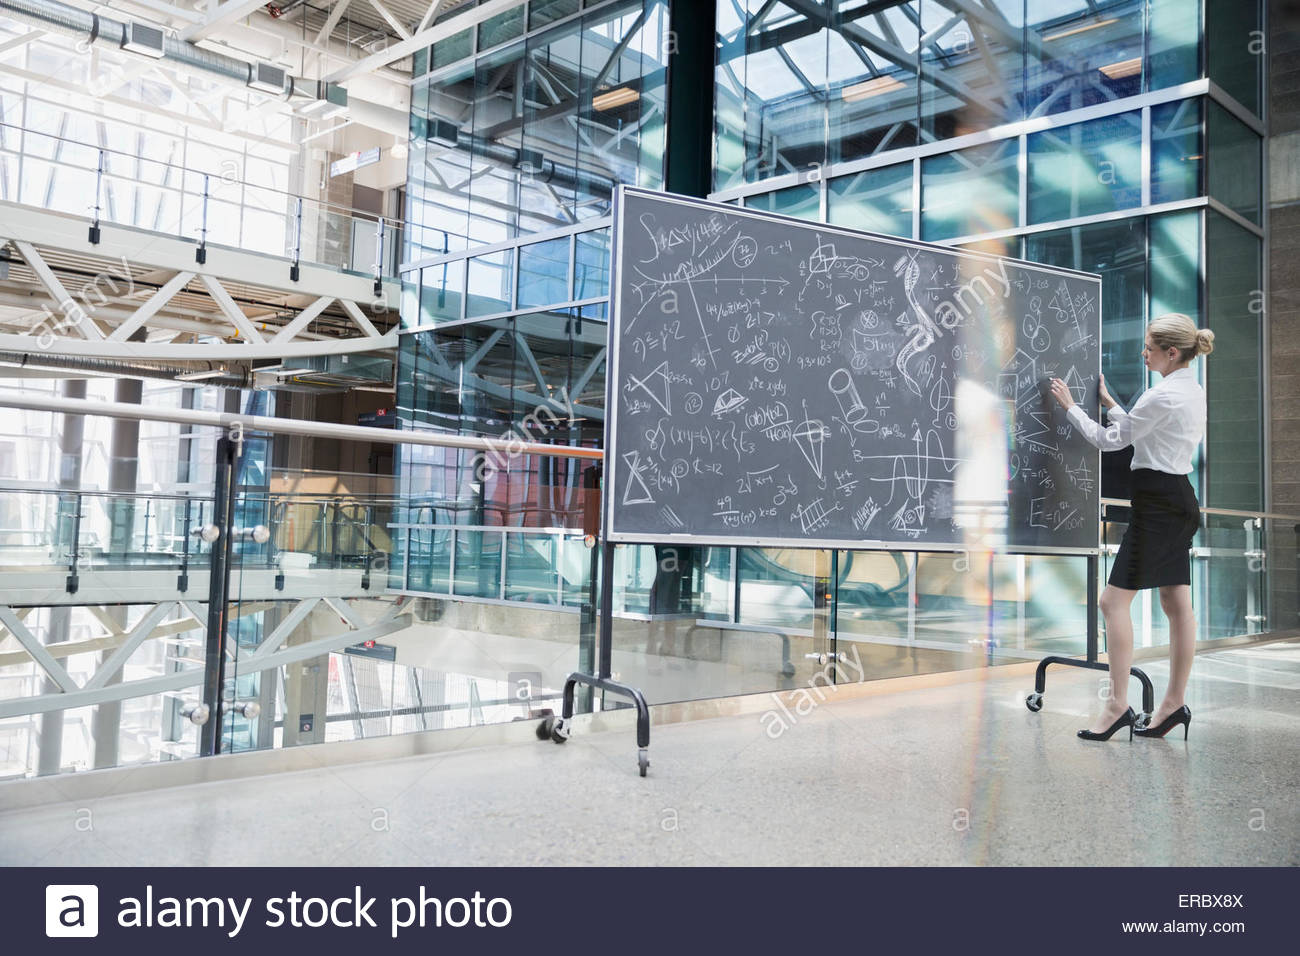 Businesswoman writing complex equations on blackboard in atrium - Stock Image